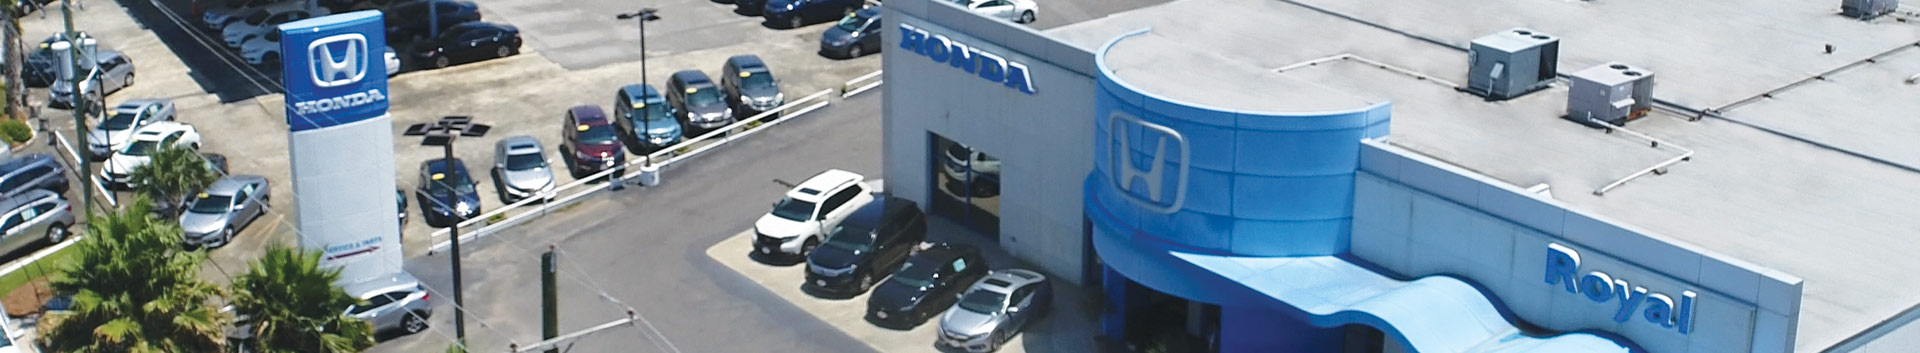 Royal Honda Storefront